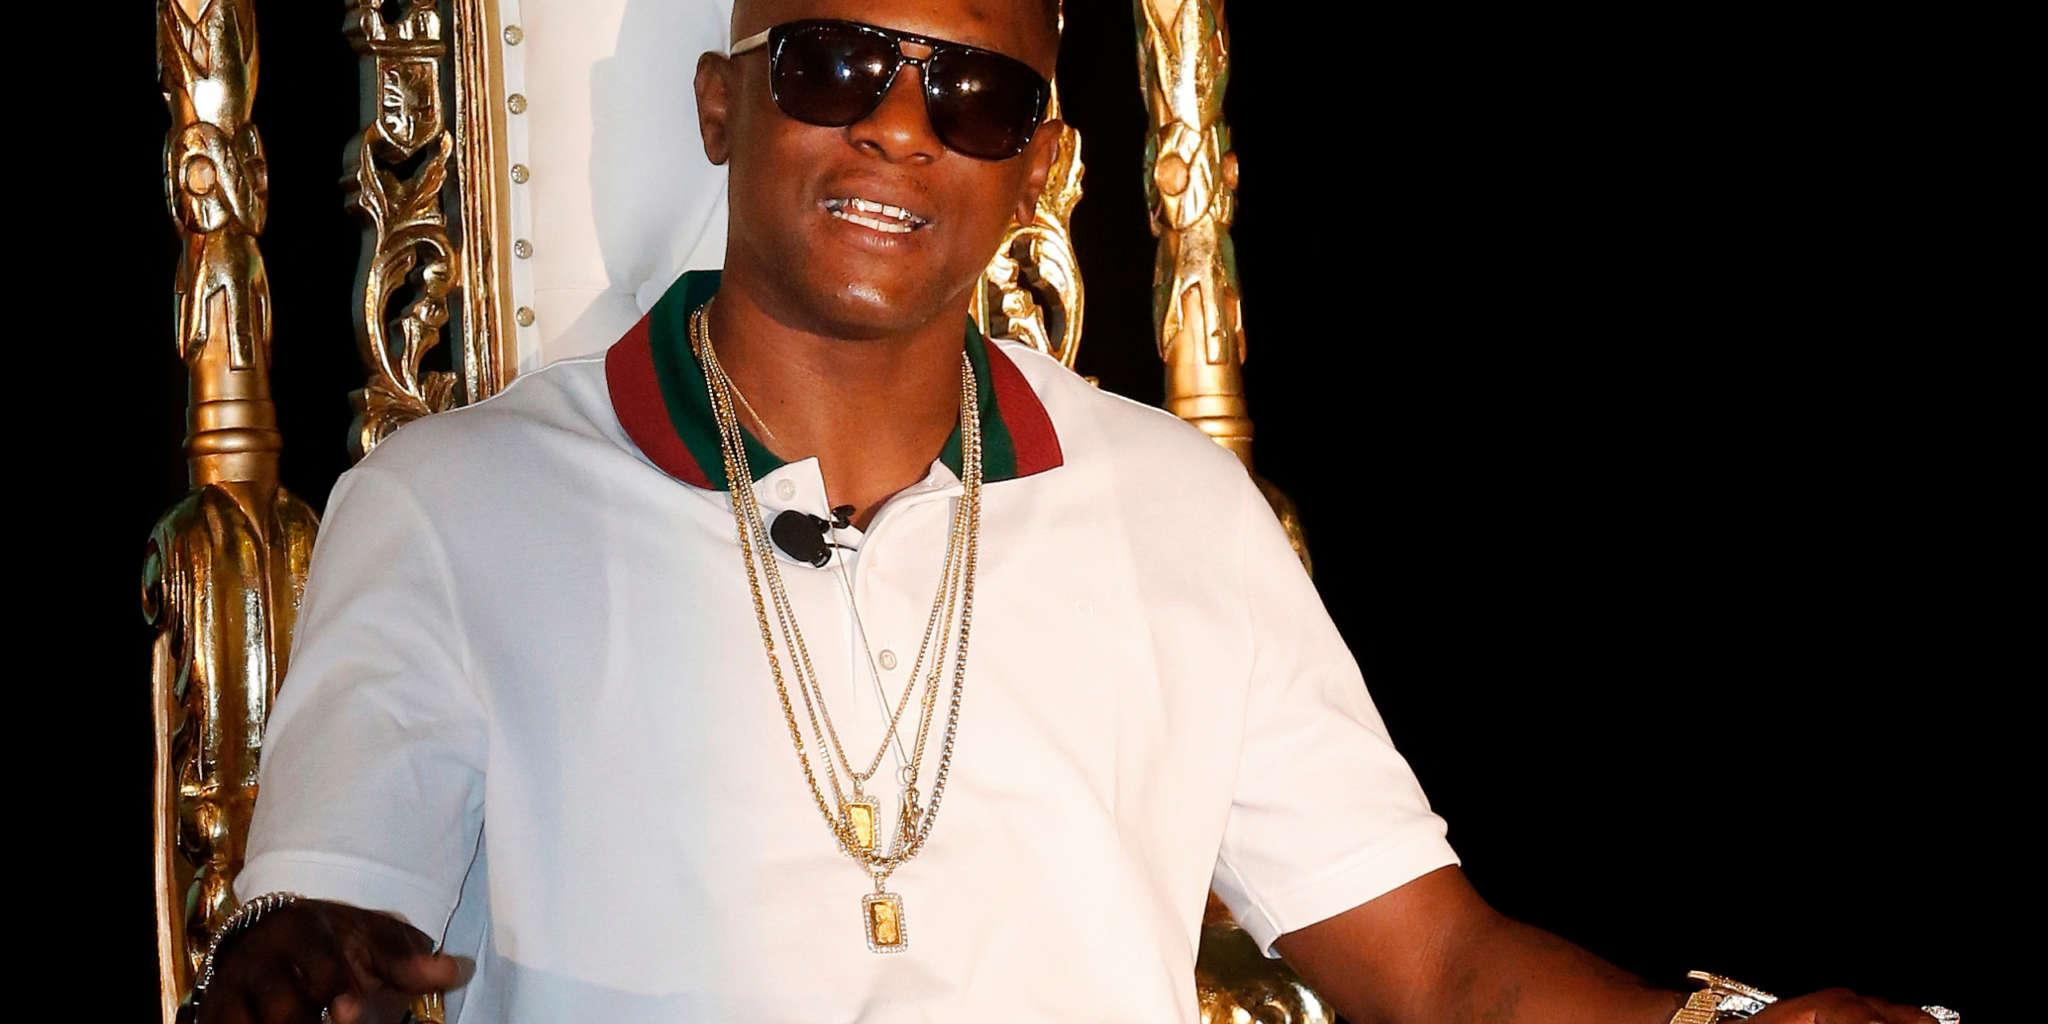 Lil Boosie Faces Two Felony Charges In Georgia